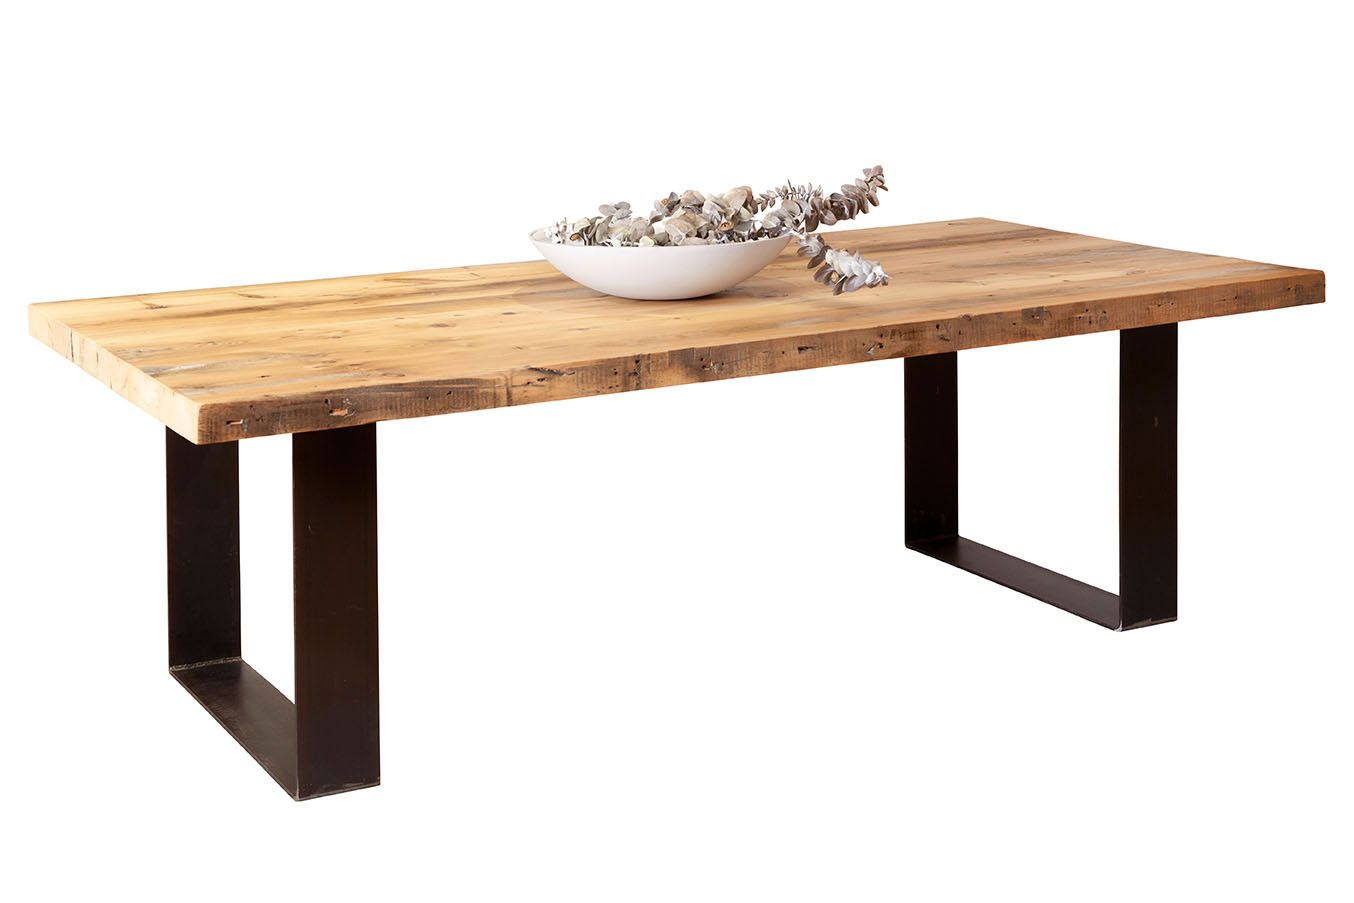 Bespoke Furniture Custom Plaistowe Recycled Baltic Pine Timber Dining Table With Industrial Steel Base